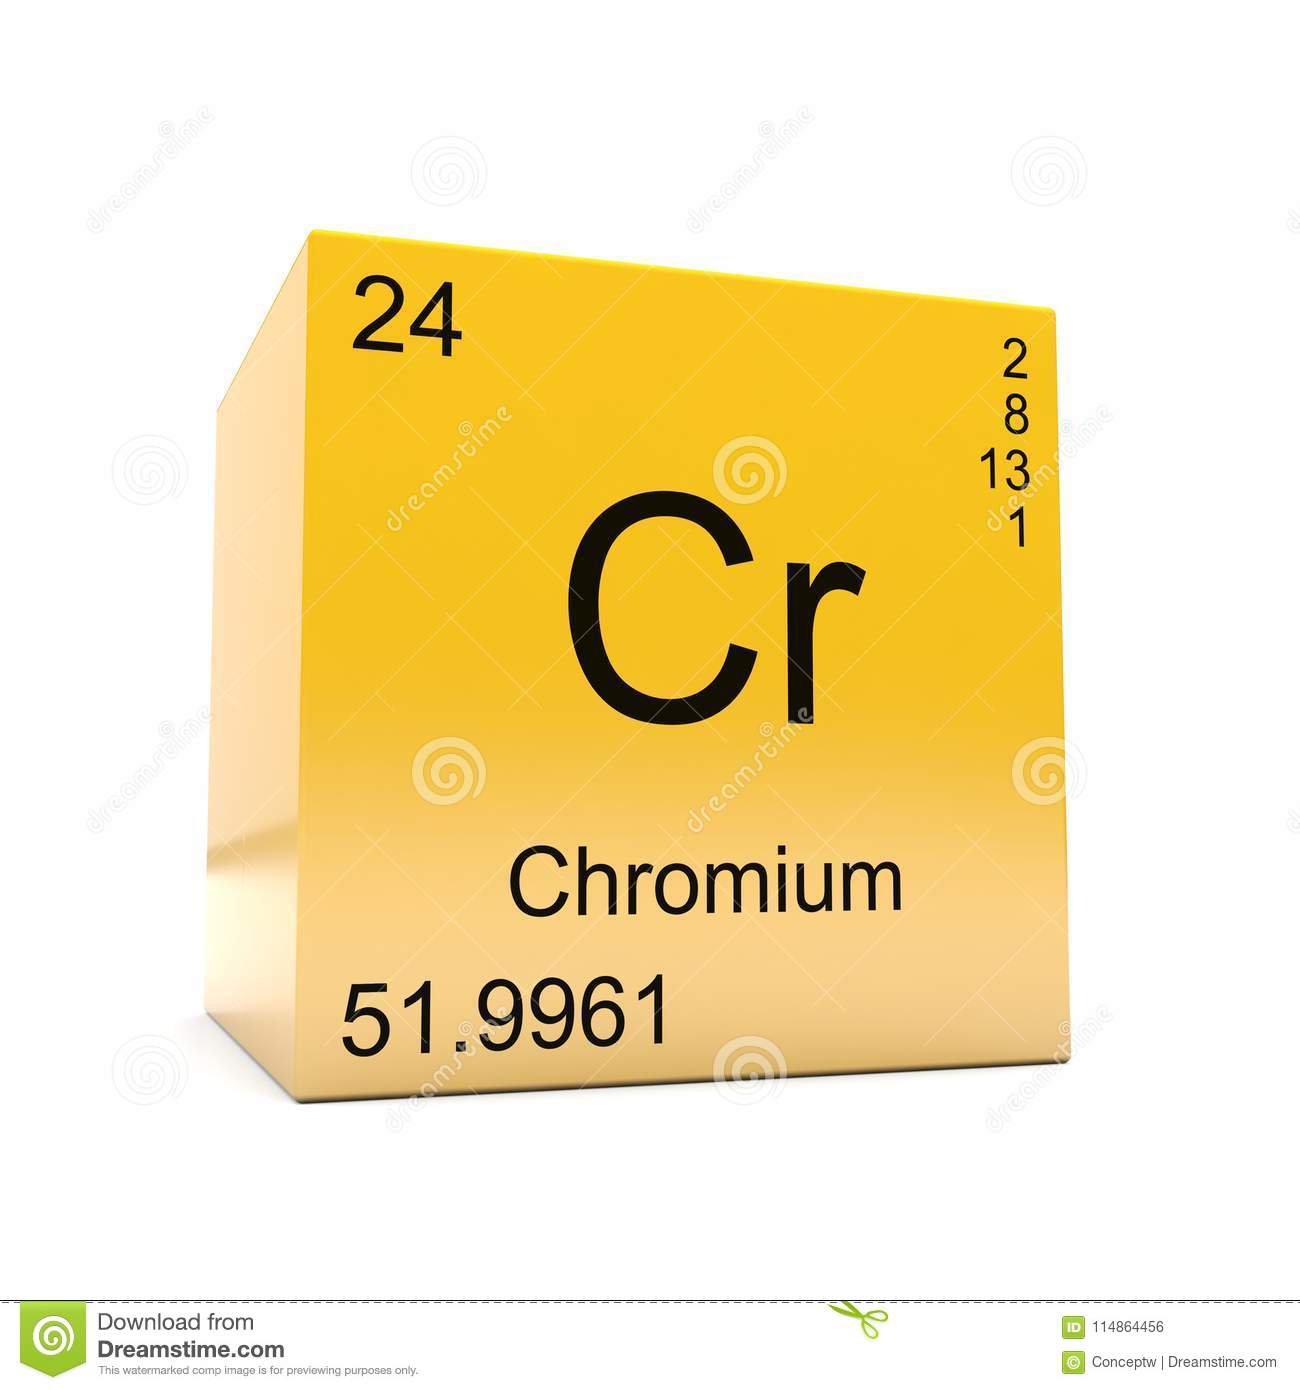 Chromium Chemical Element Symbol From Periodic Table Stock